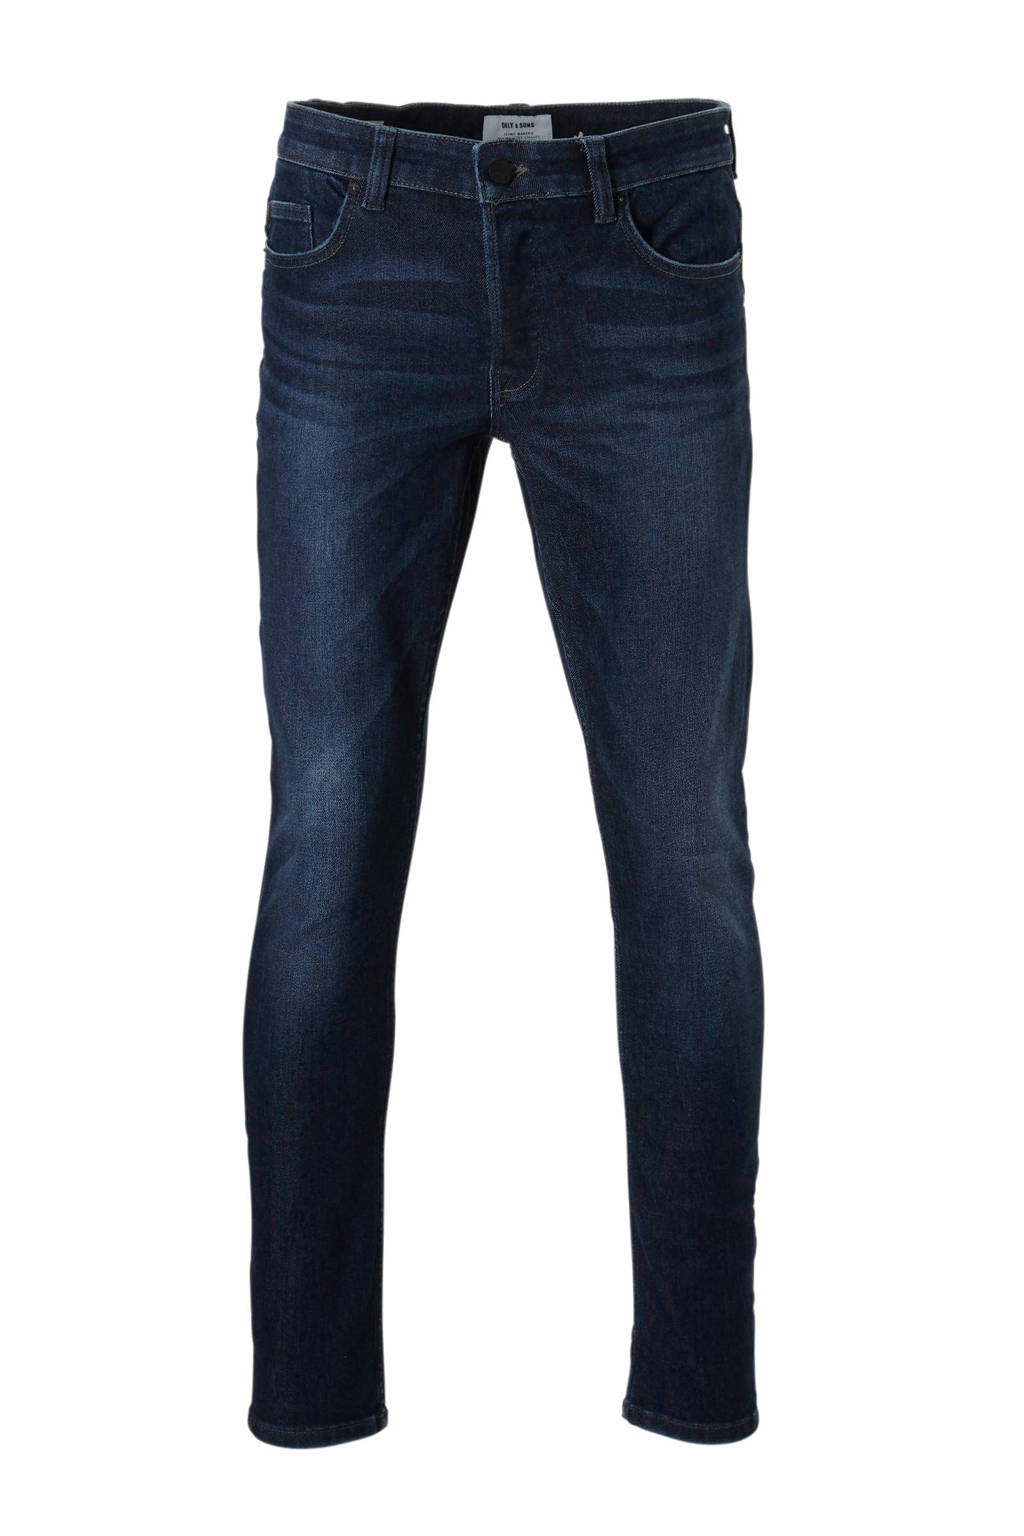 Only & Sons slim fit jeans, Dark denim